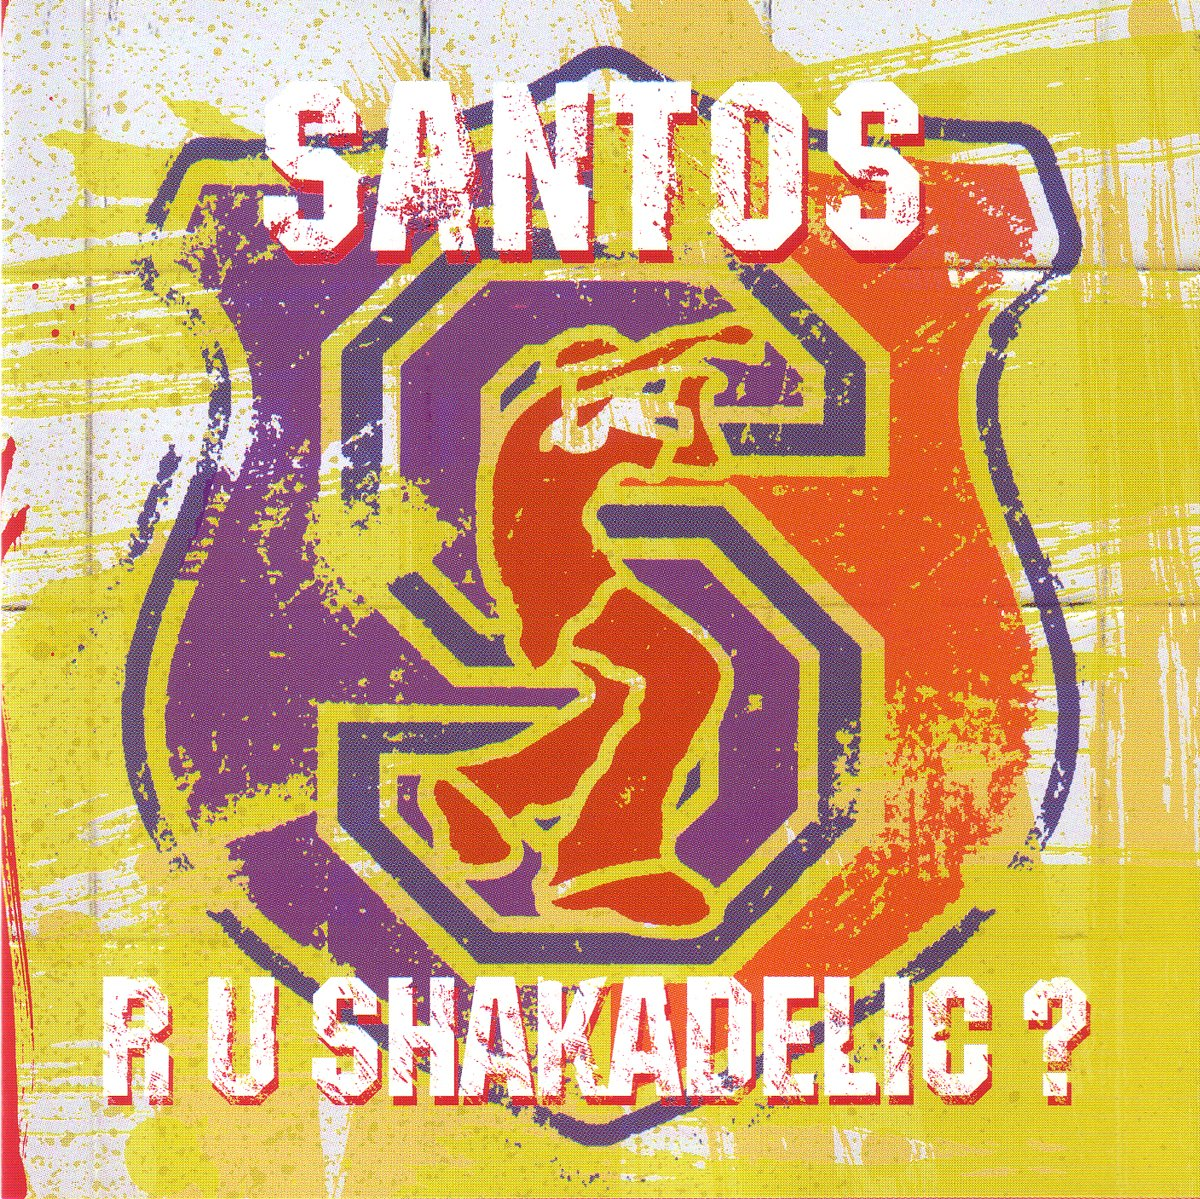 Santos Santos. Are U Shakadelic? (2 LP)